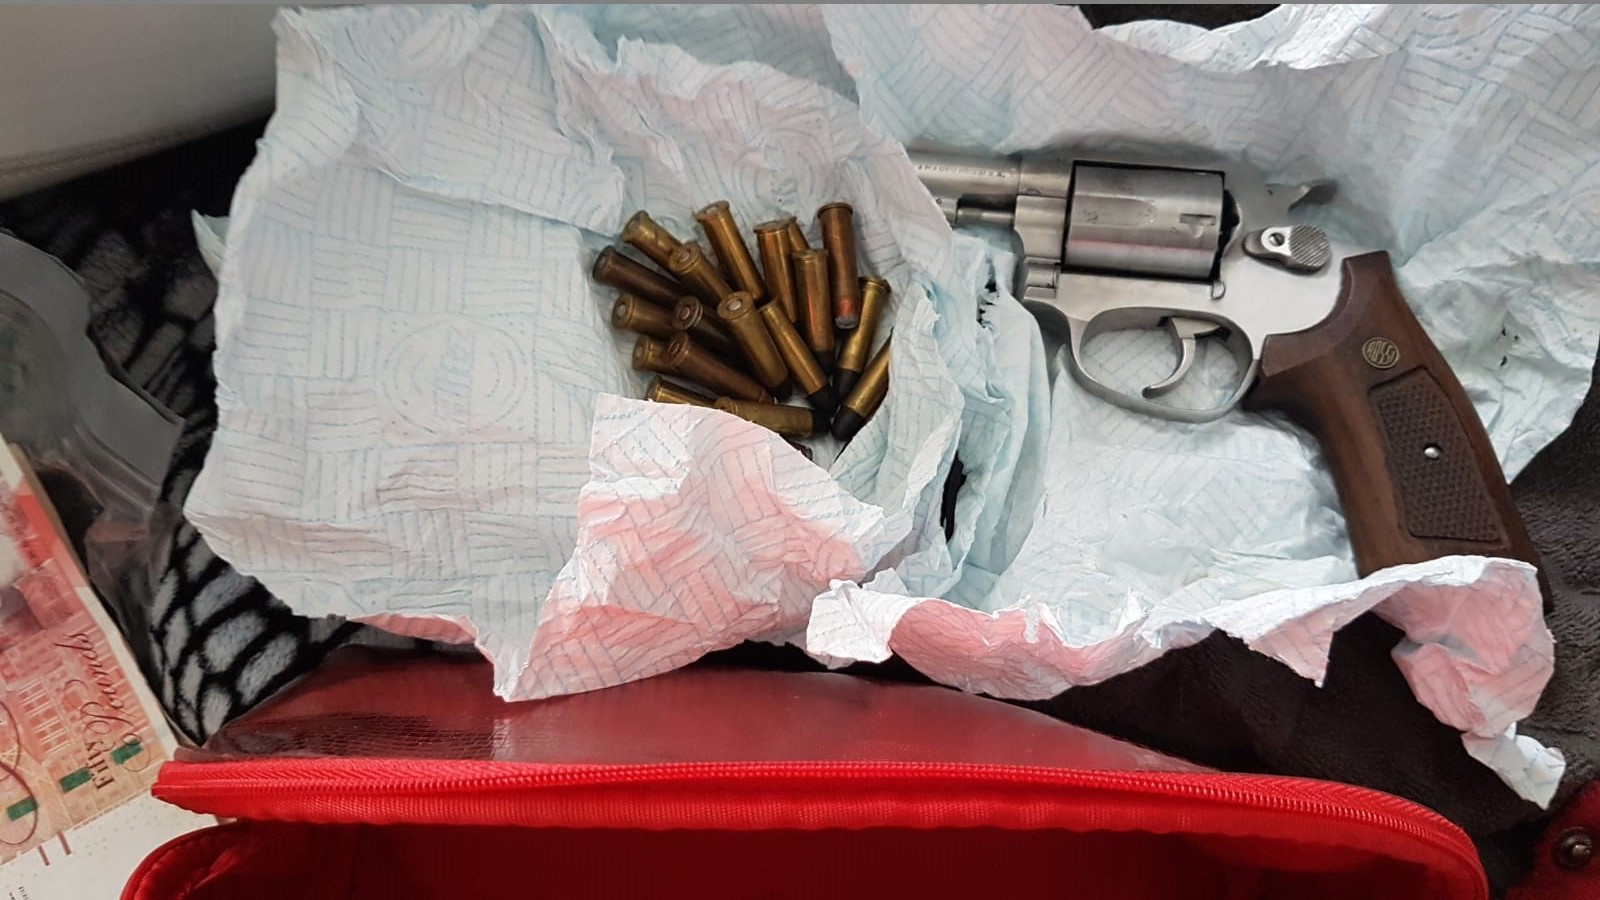 Picture of handgun and bullets